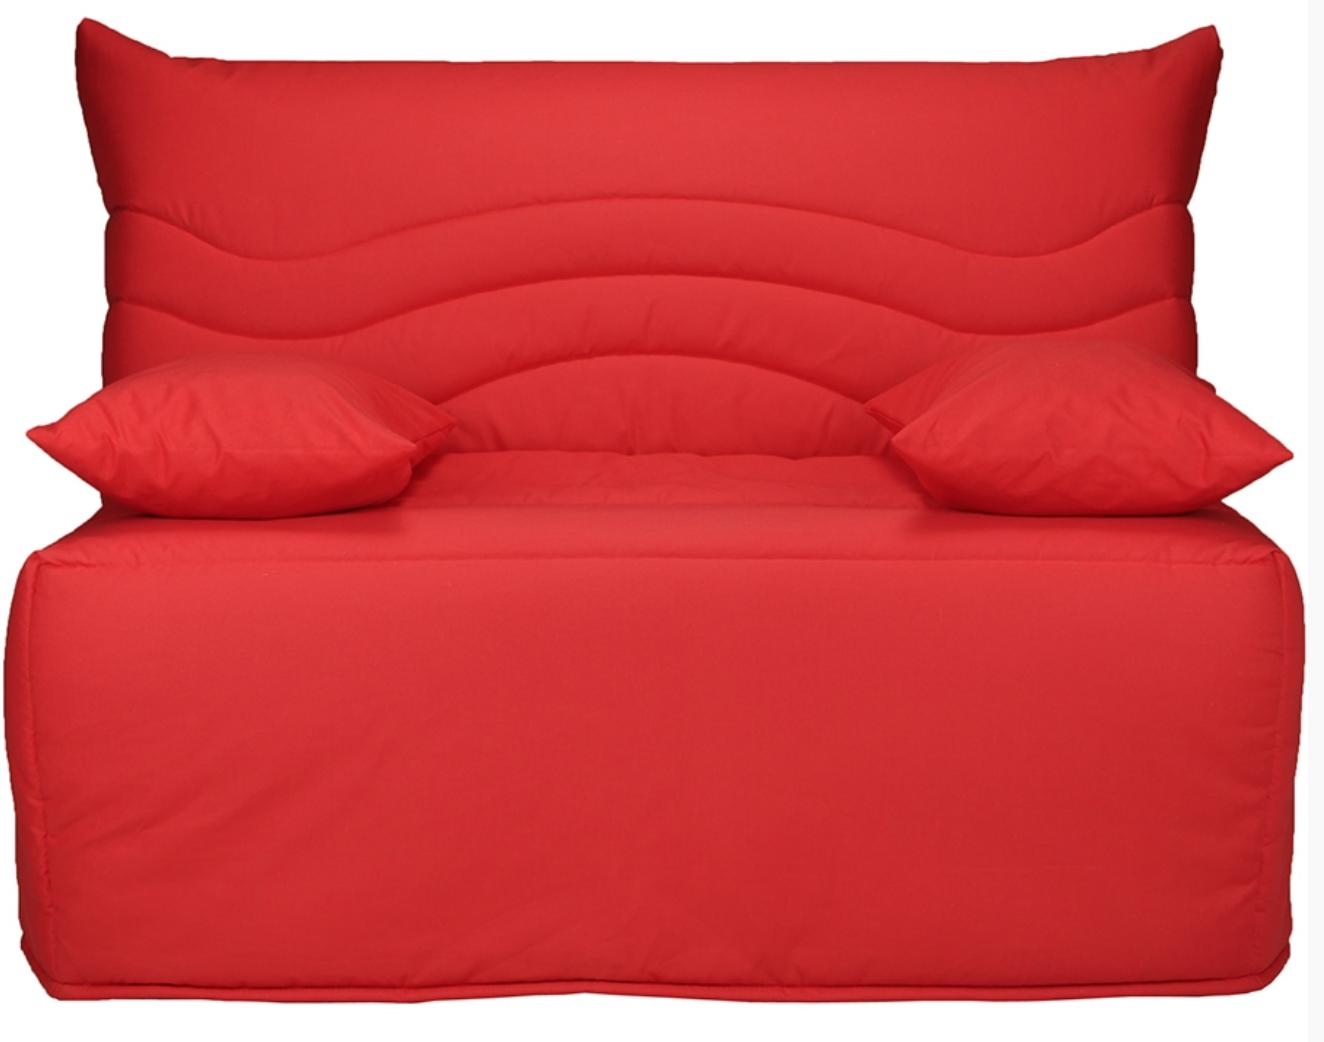 banquette bz rouge 160 matelas sofaconfort 12 cm brioca. Black Bedroom Furniture Sets. Home Design Ideas